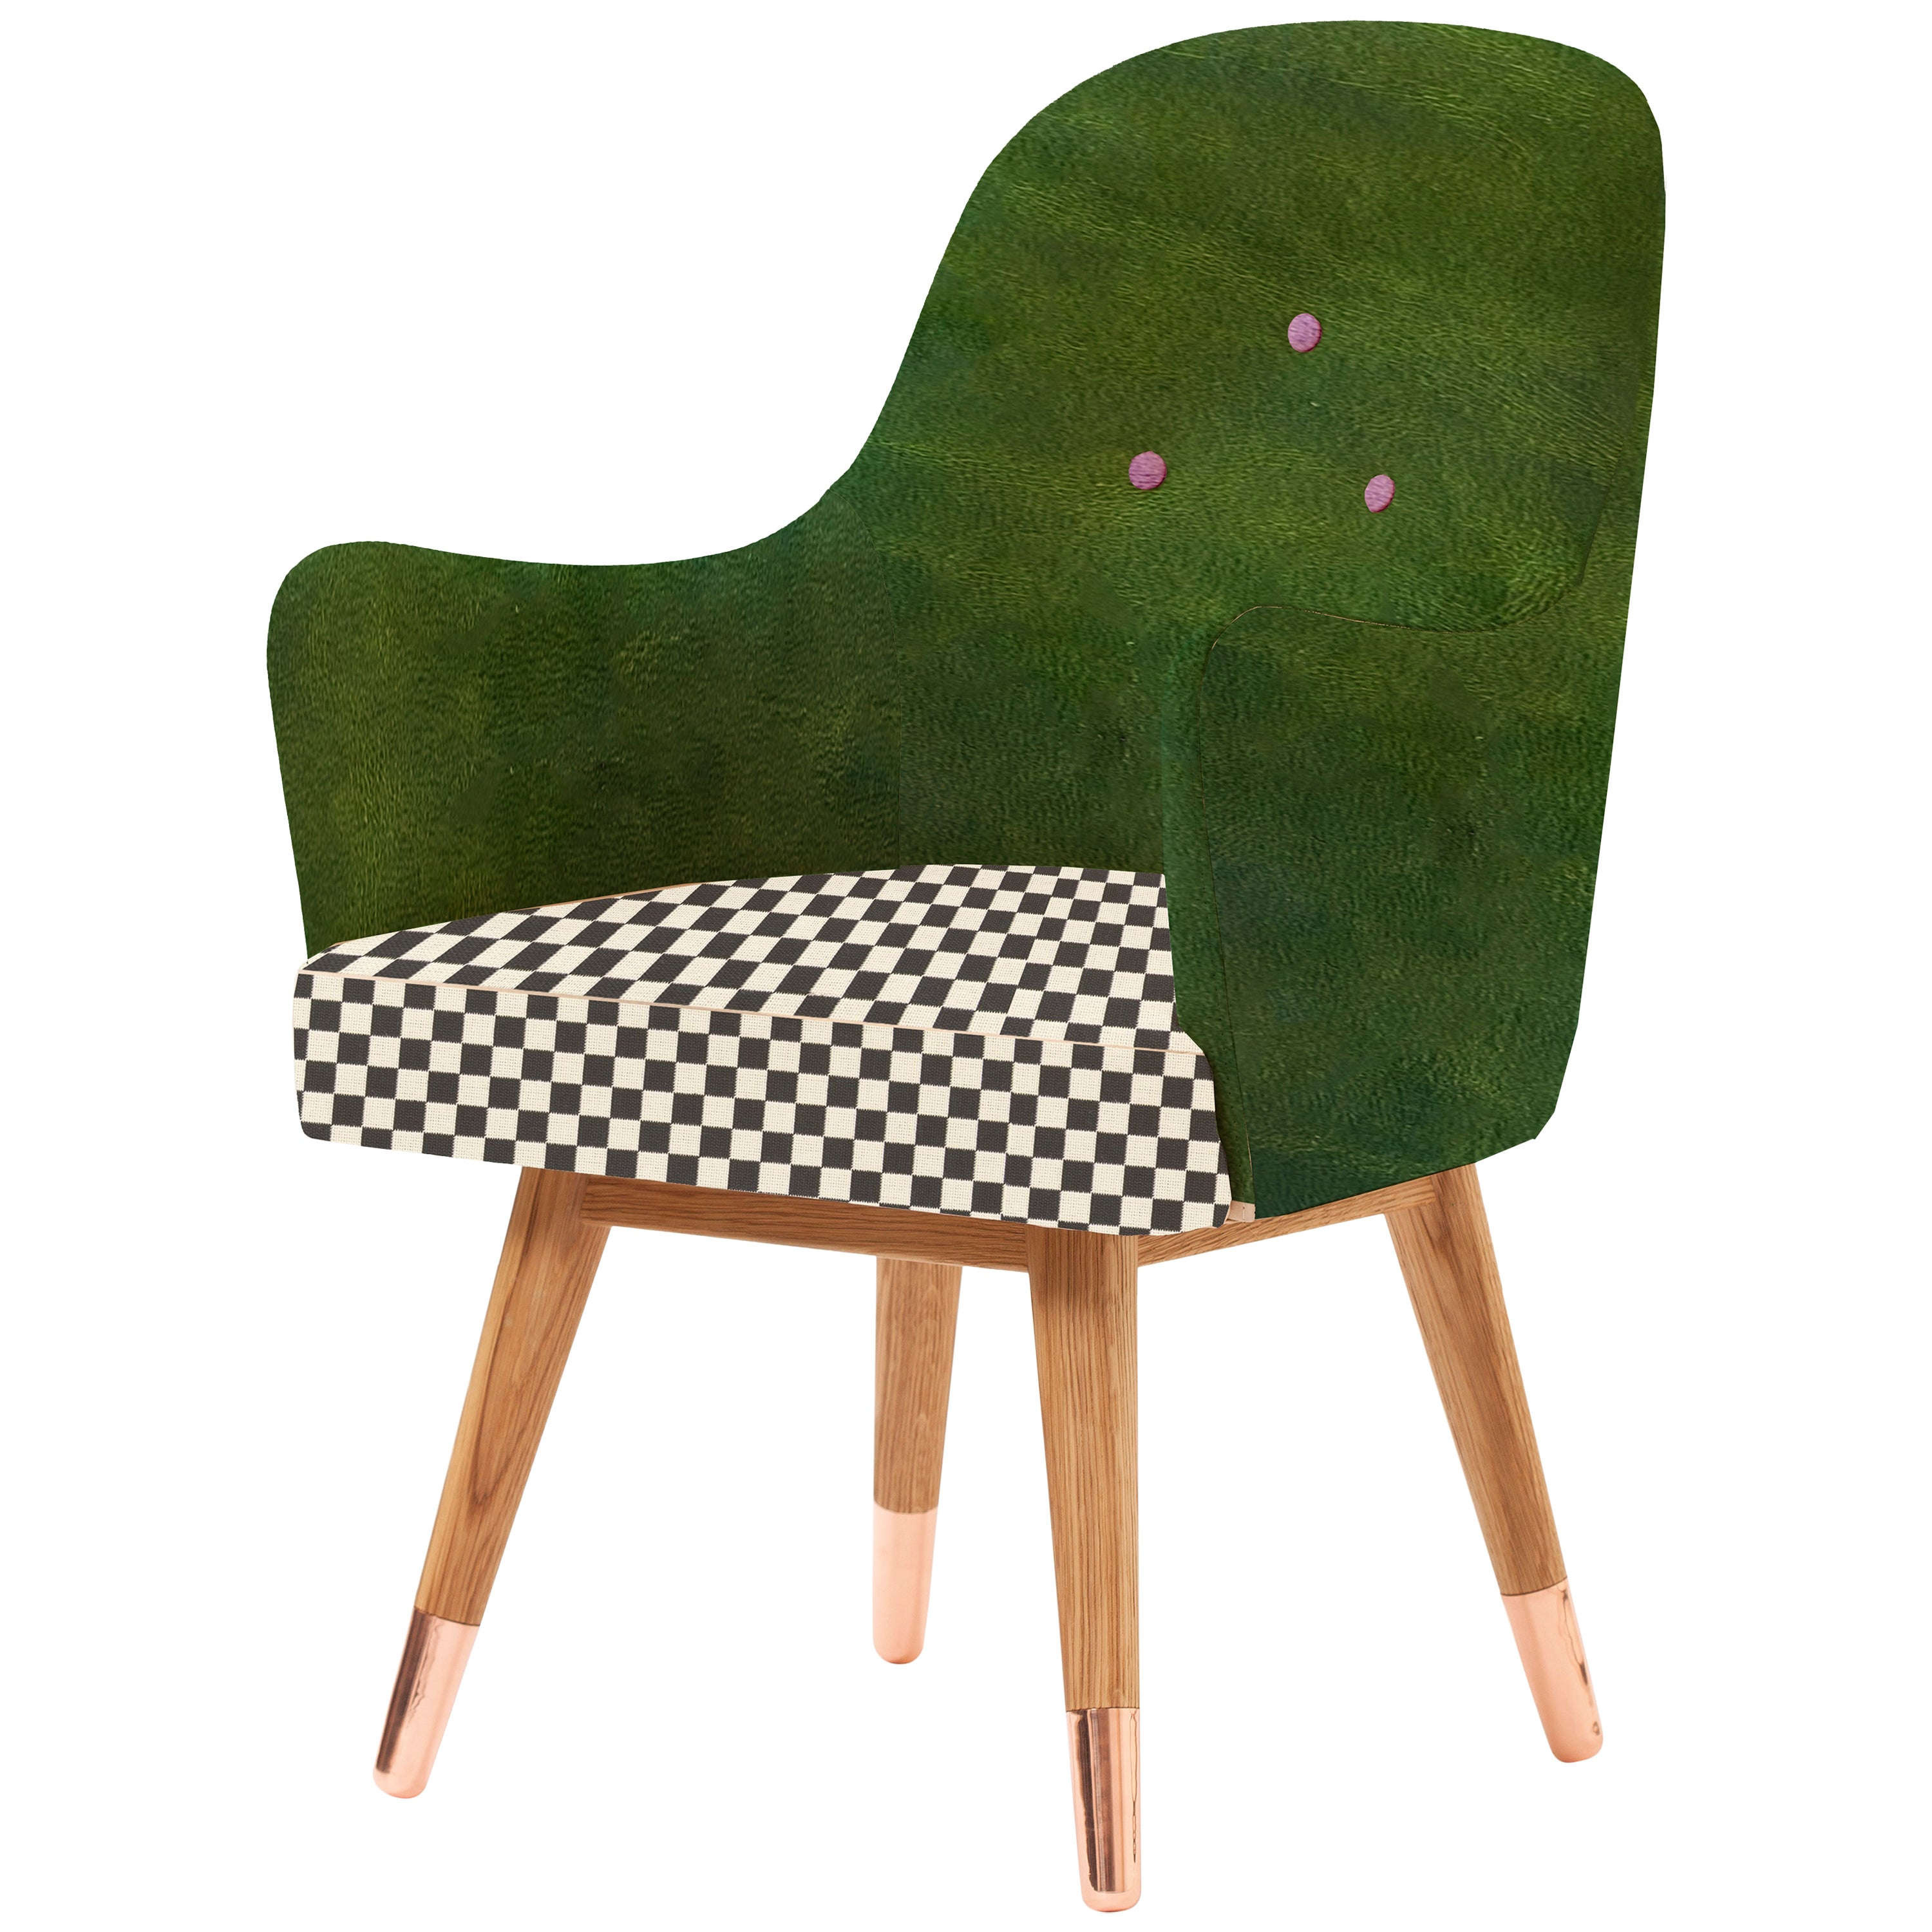 Contemporary Dandy Chair with Green Leather, Checker Upholstery and Copper